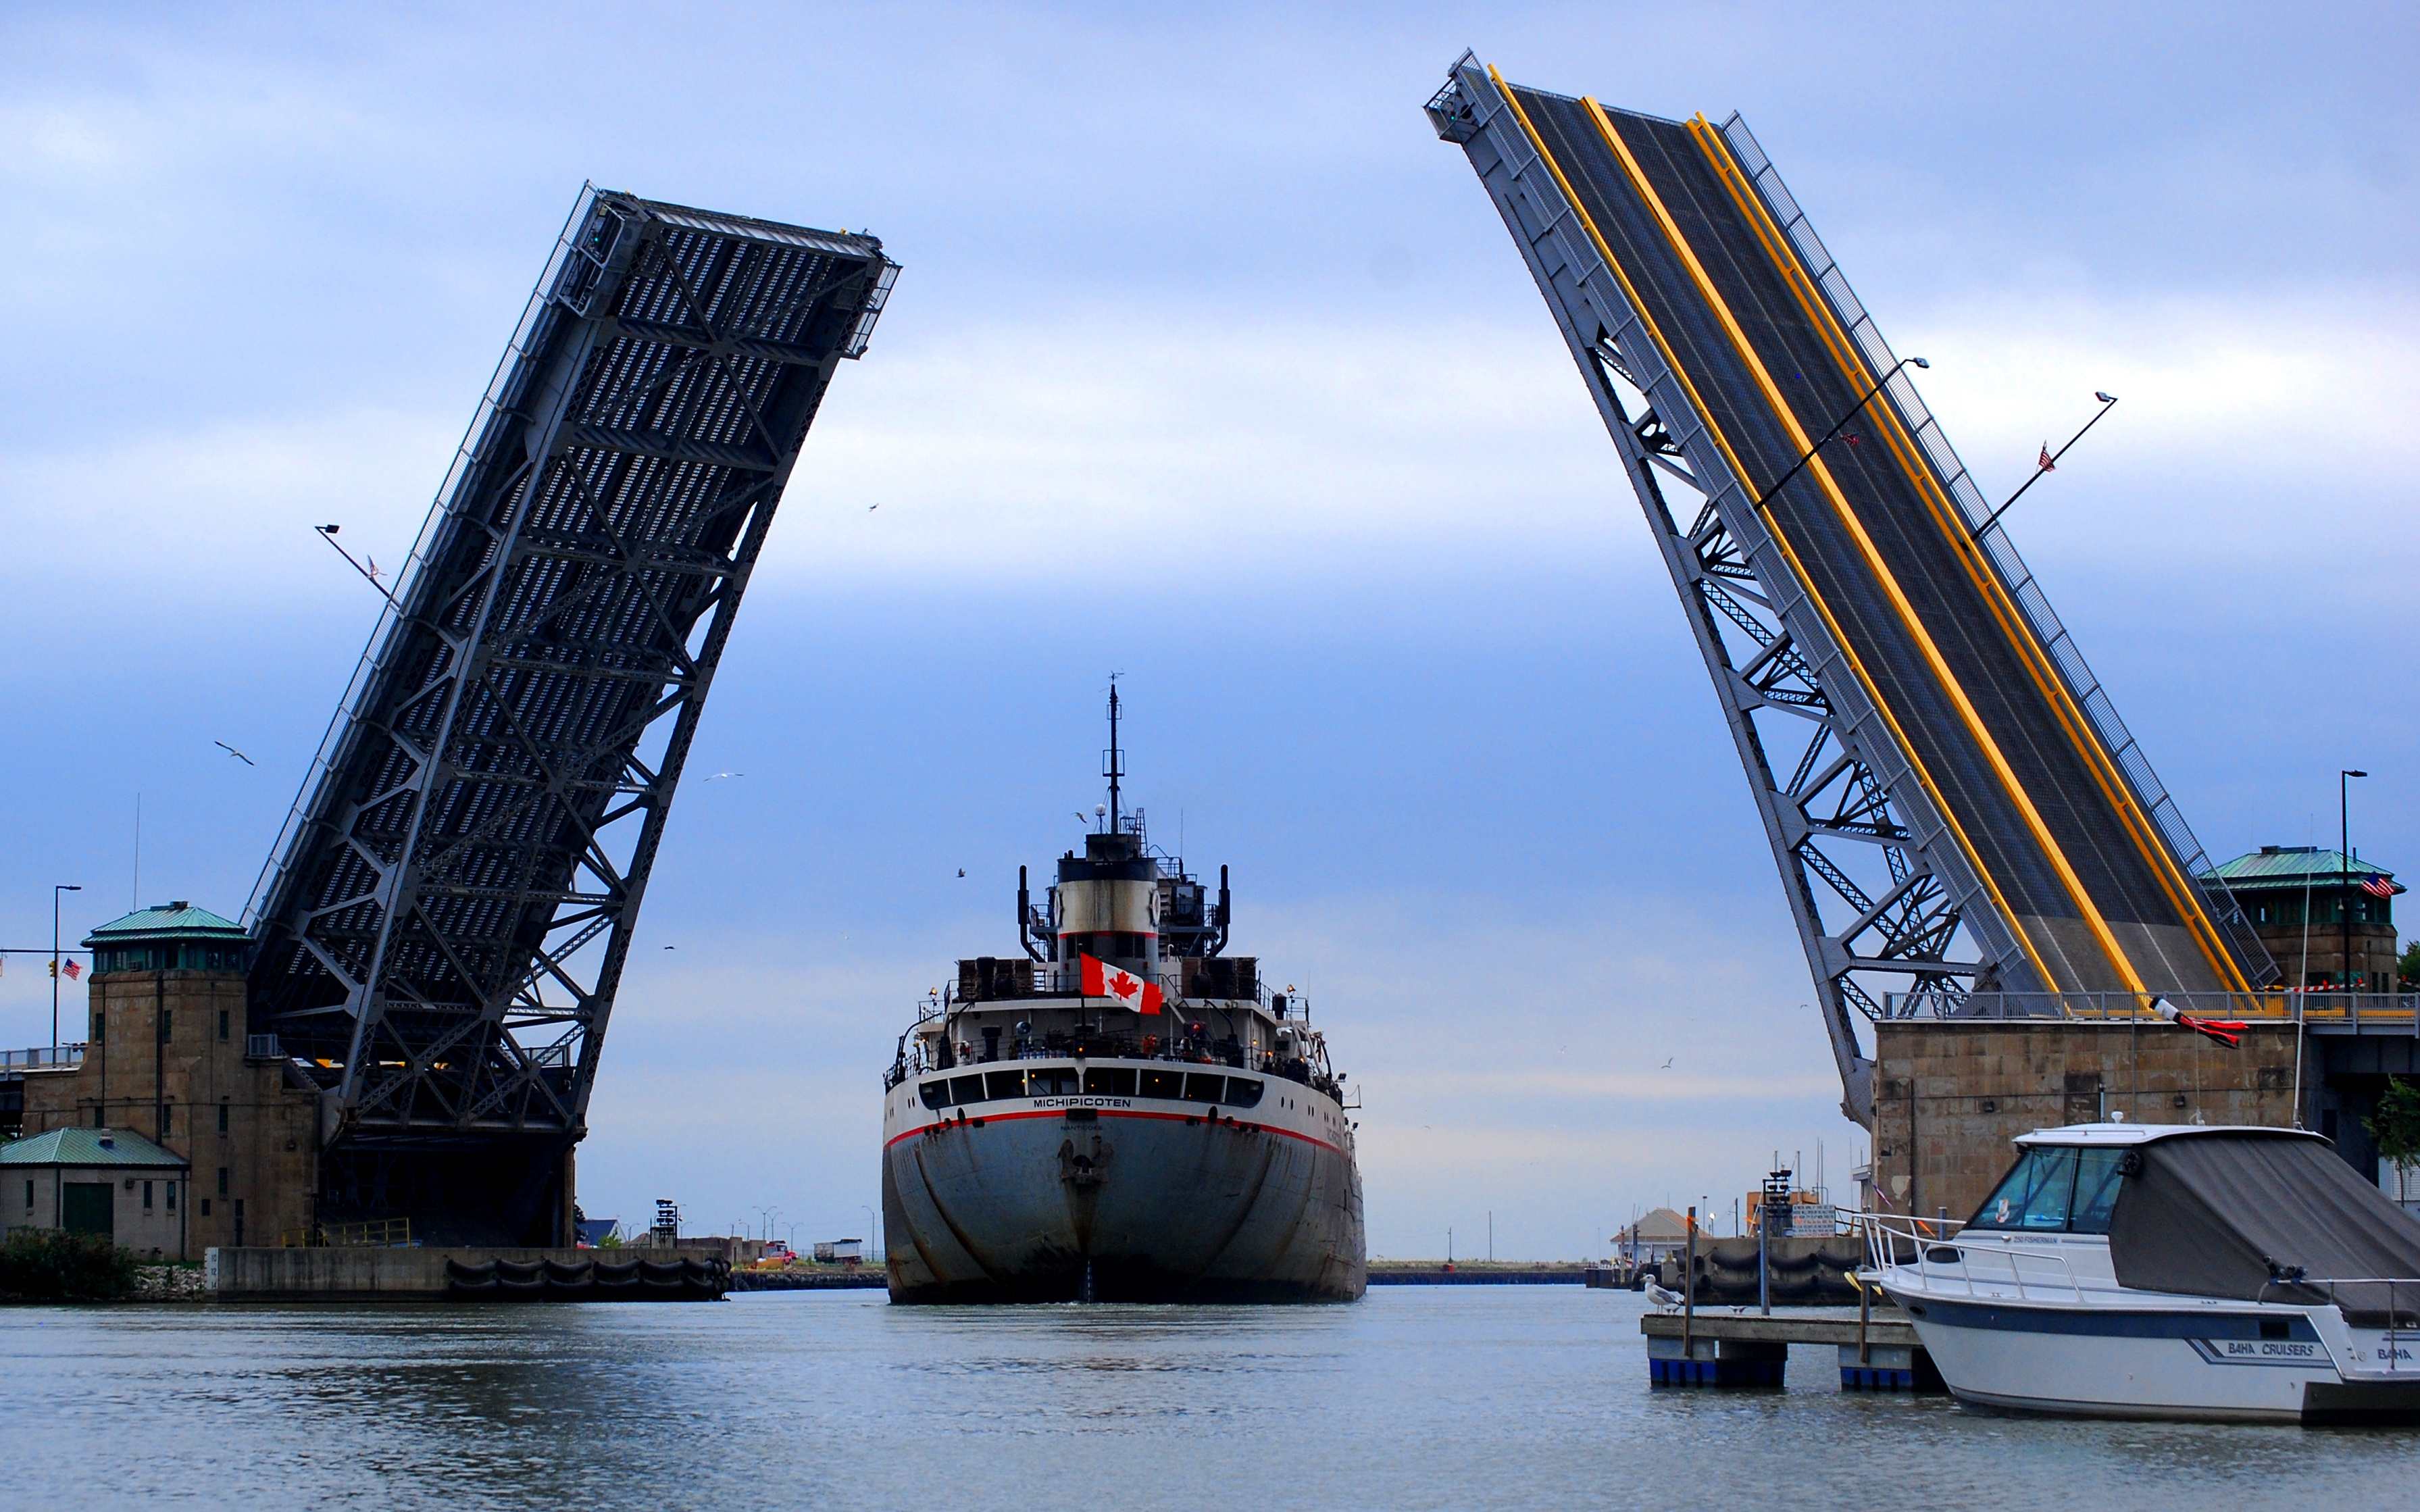 Lake_freighter_Michipicoten_enters_harbour_in_Lorain,_Ohio_-_Oct._2007